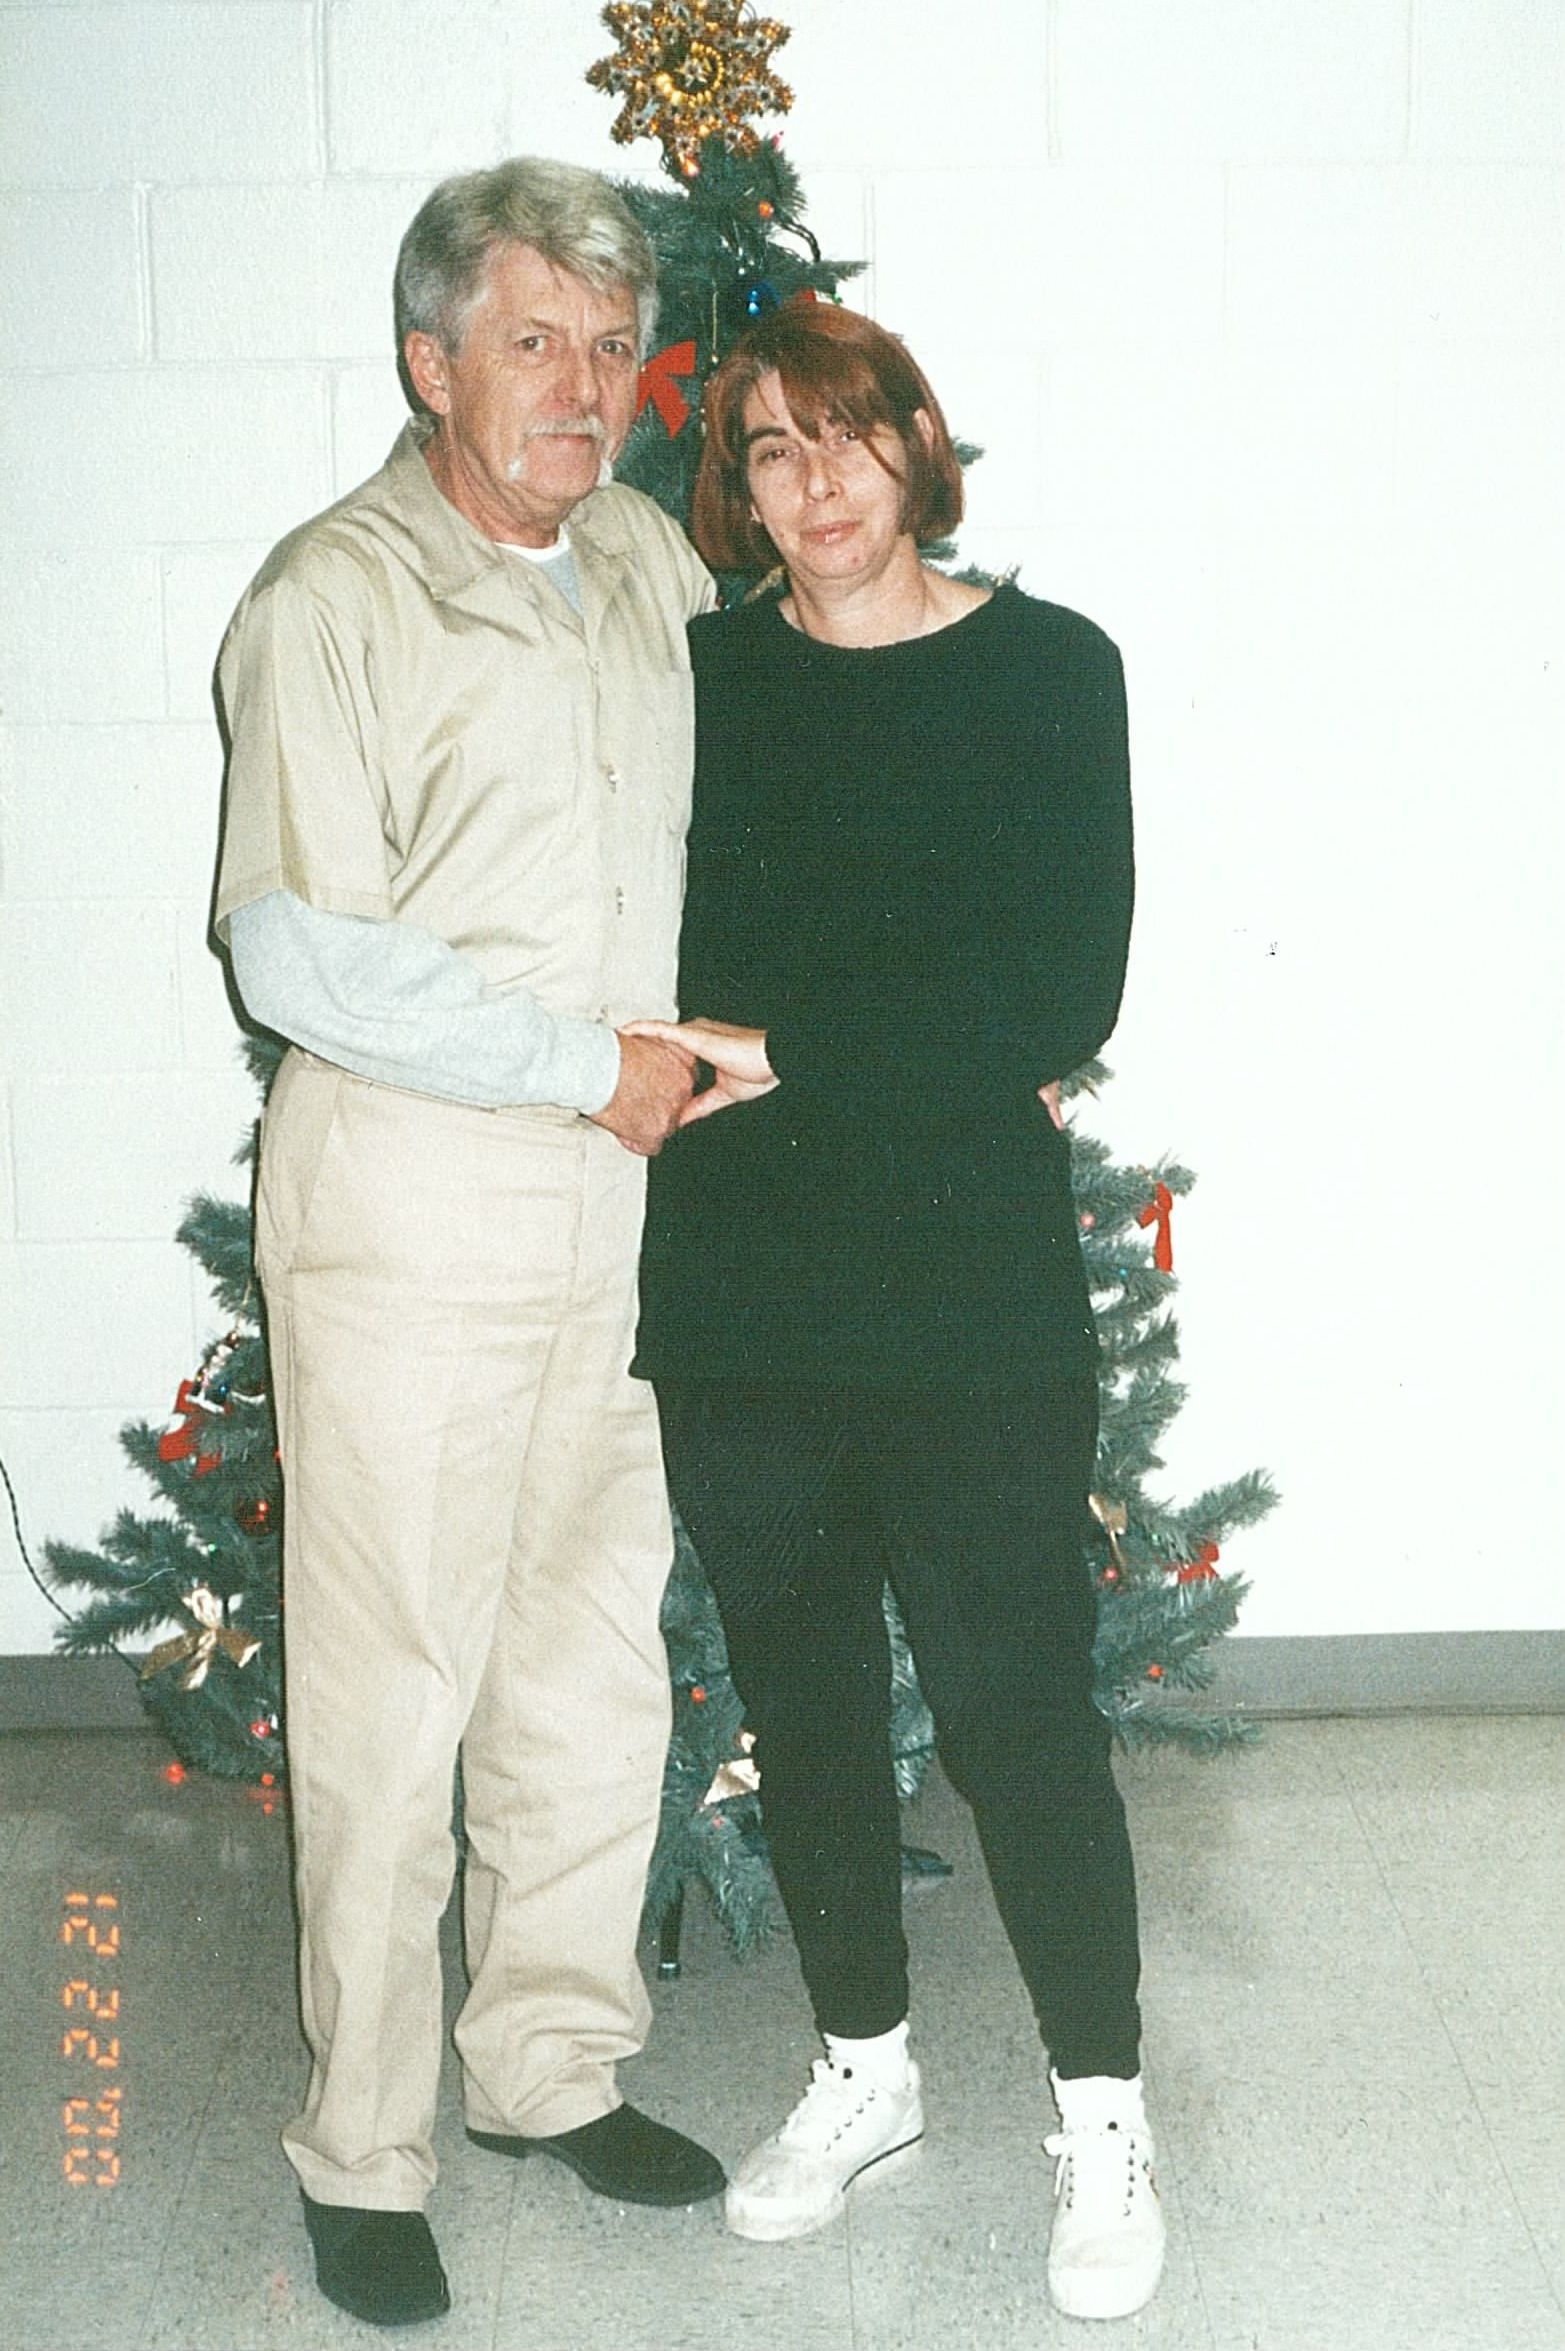 Les and Judy Rogge at Christmas in 2000 at USP Beaumont, TX